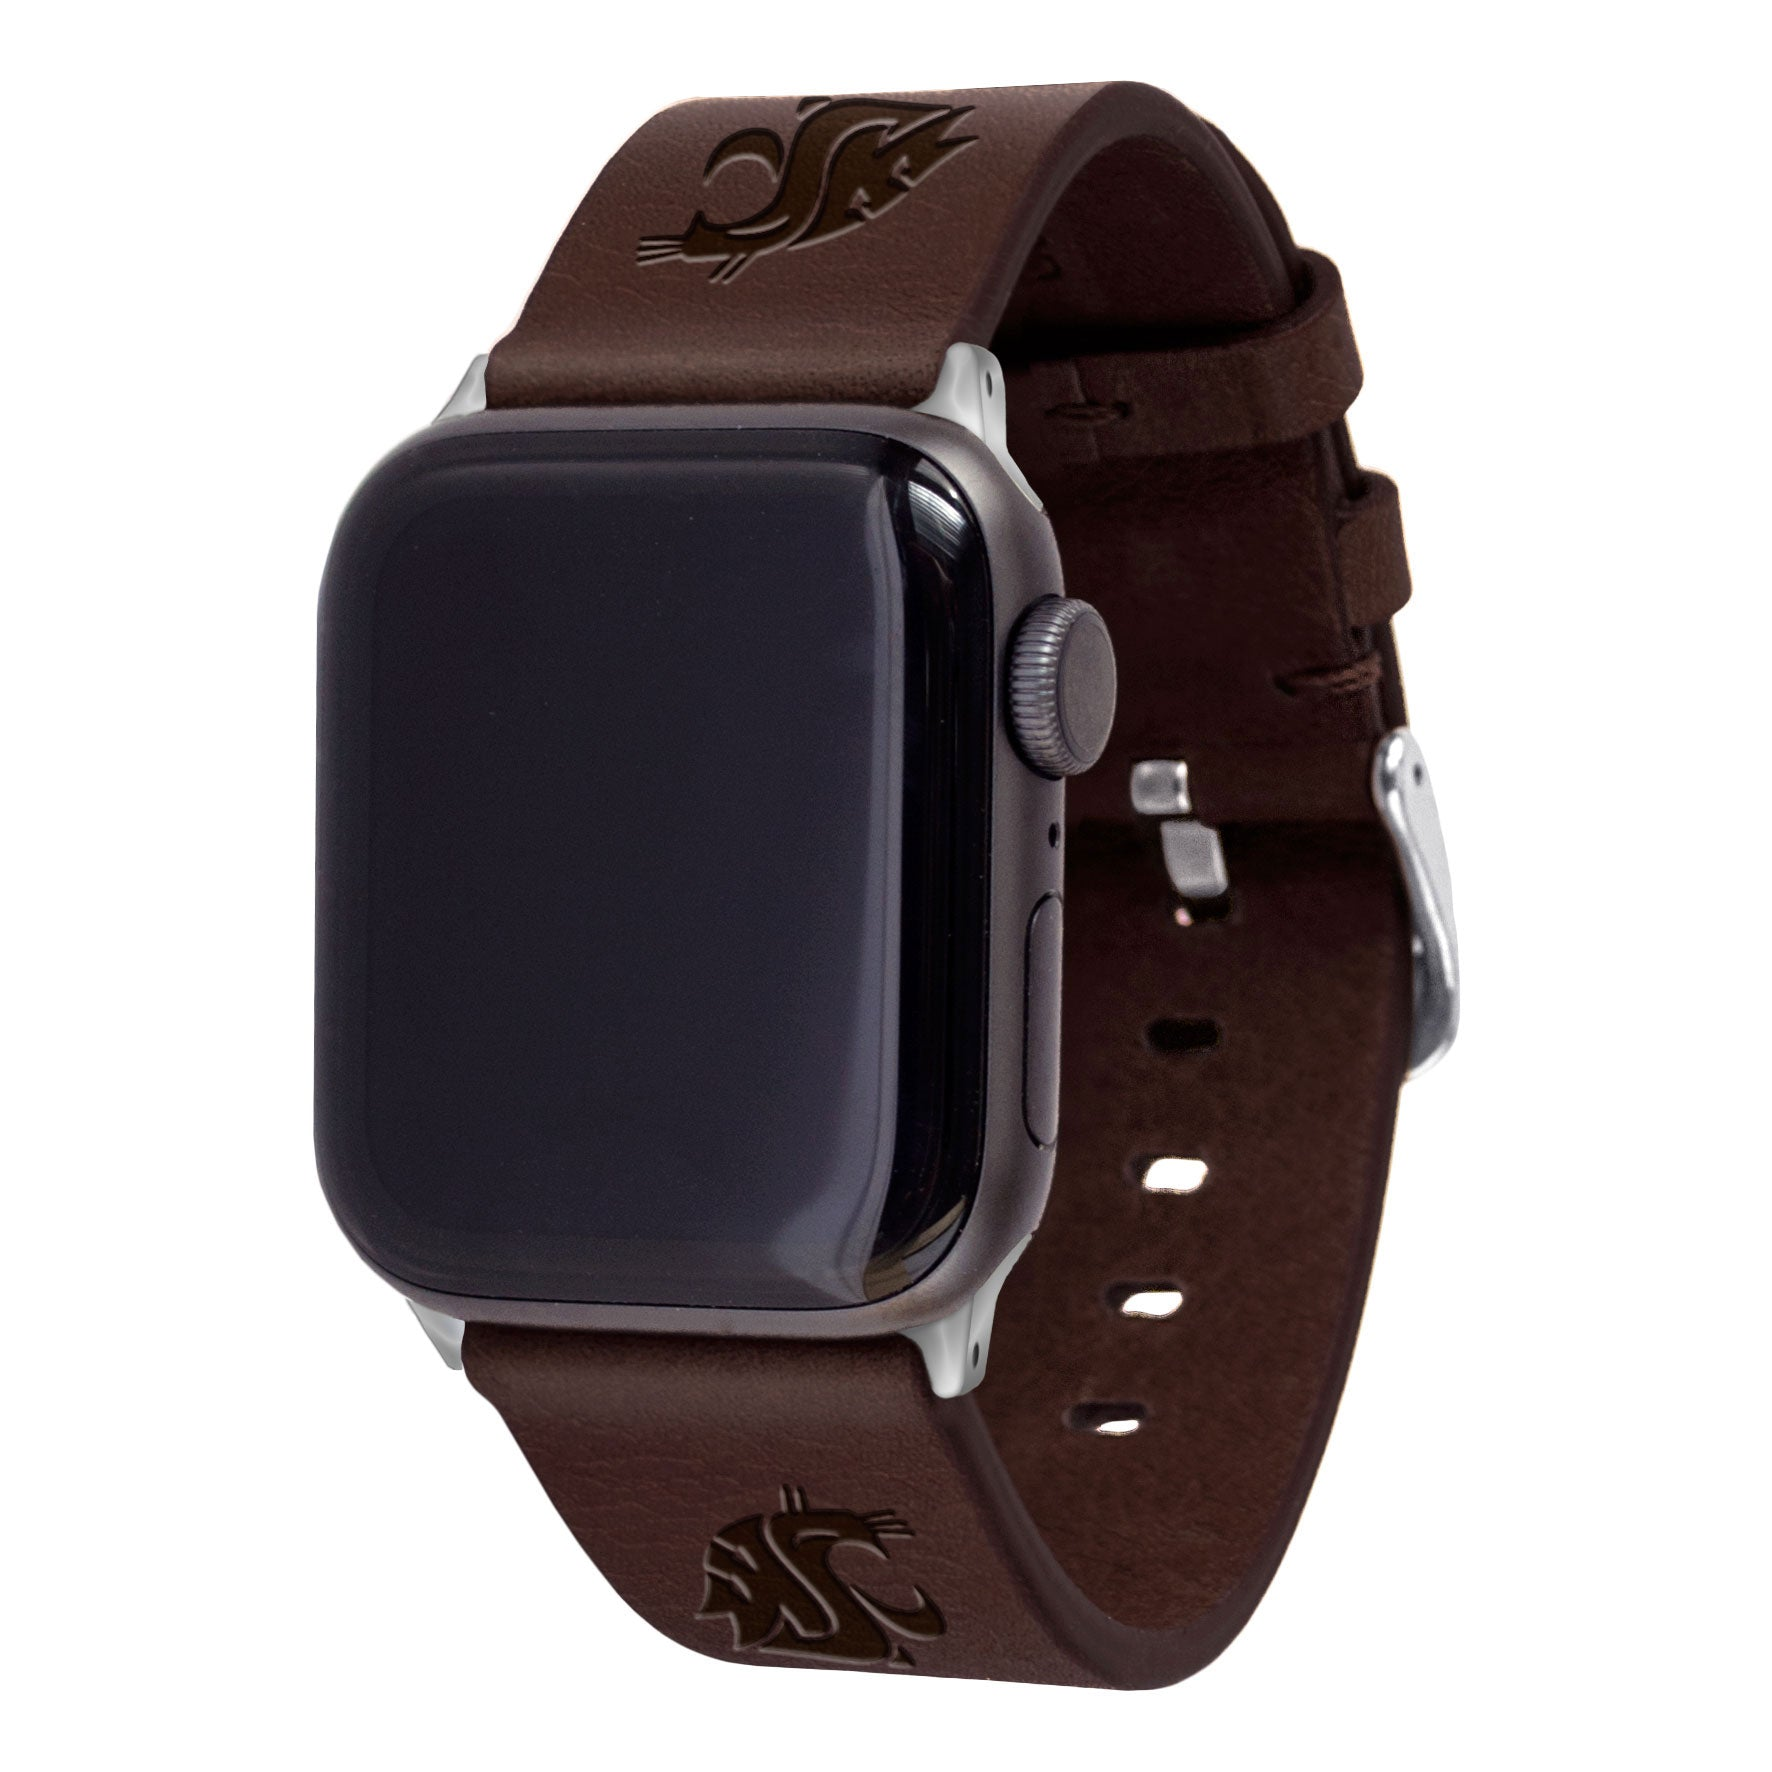 Washington State Cougars Leather Apple Watch Band - Affinity Bands